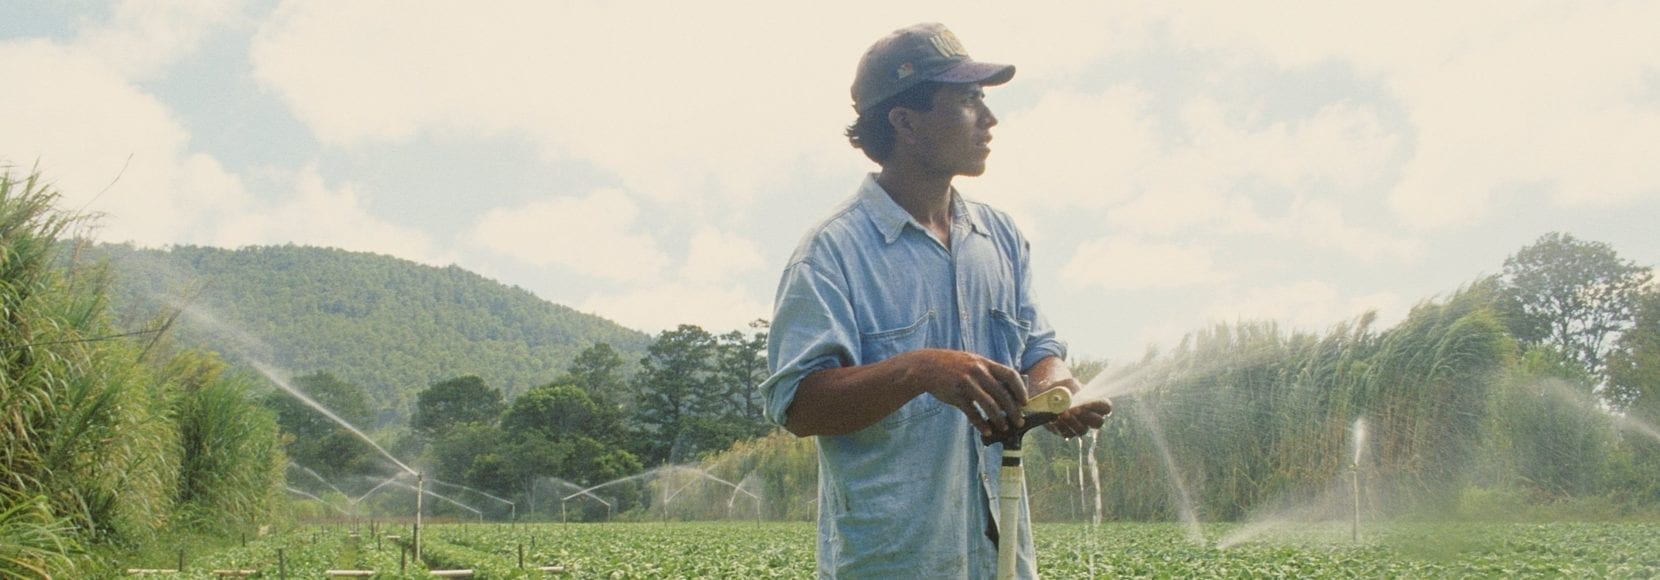 smallholder farmers like this man seen irrigating crops are essential to TechnoServe's work